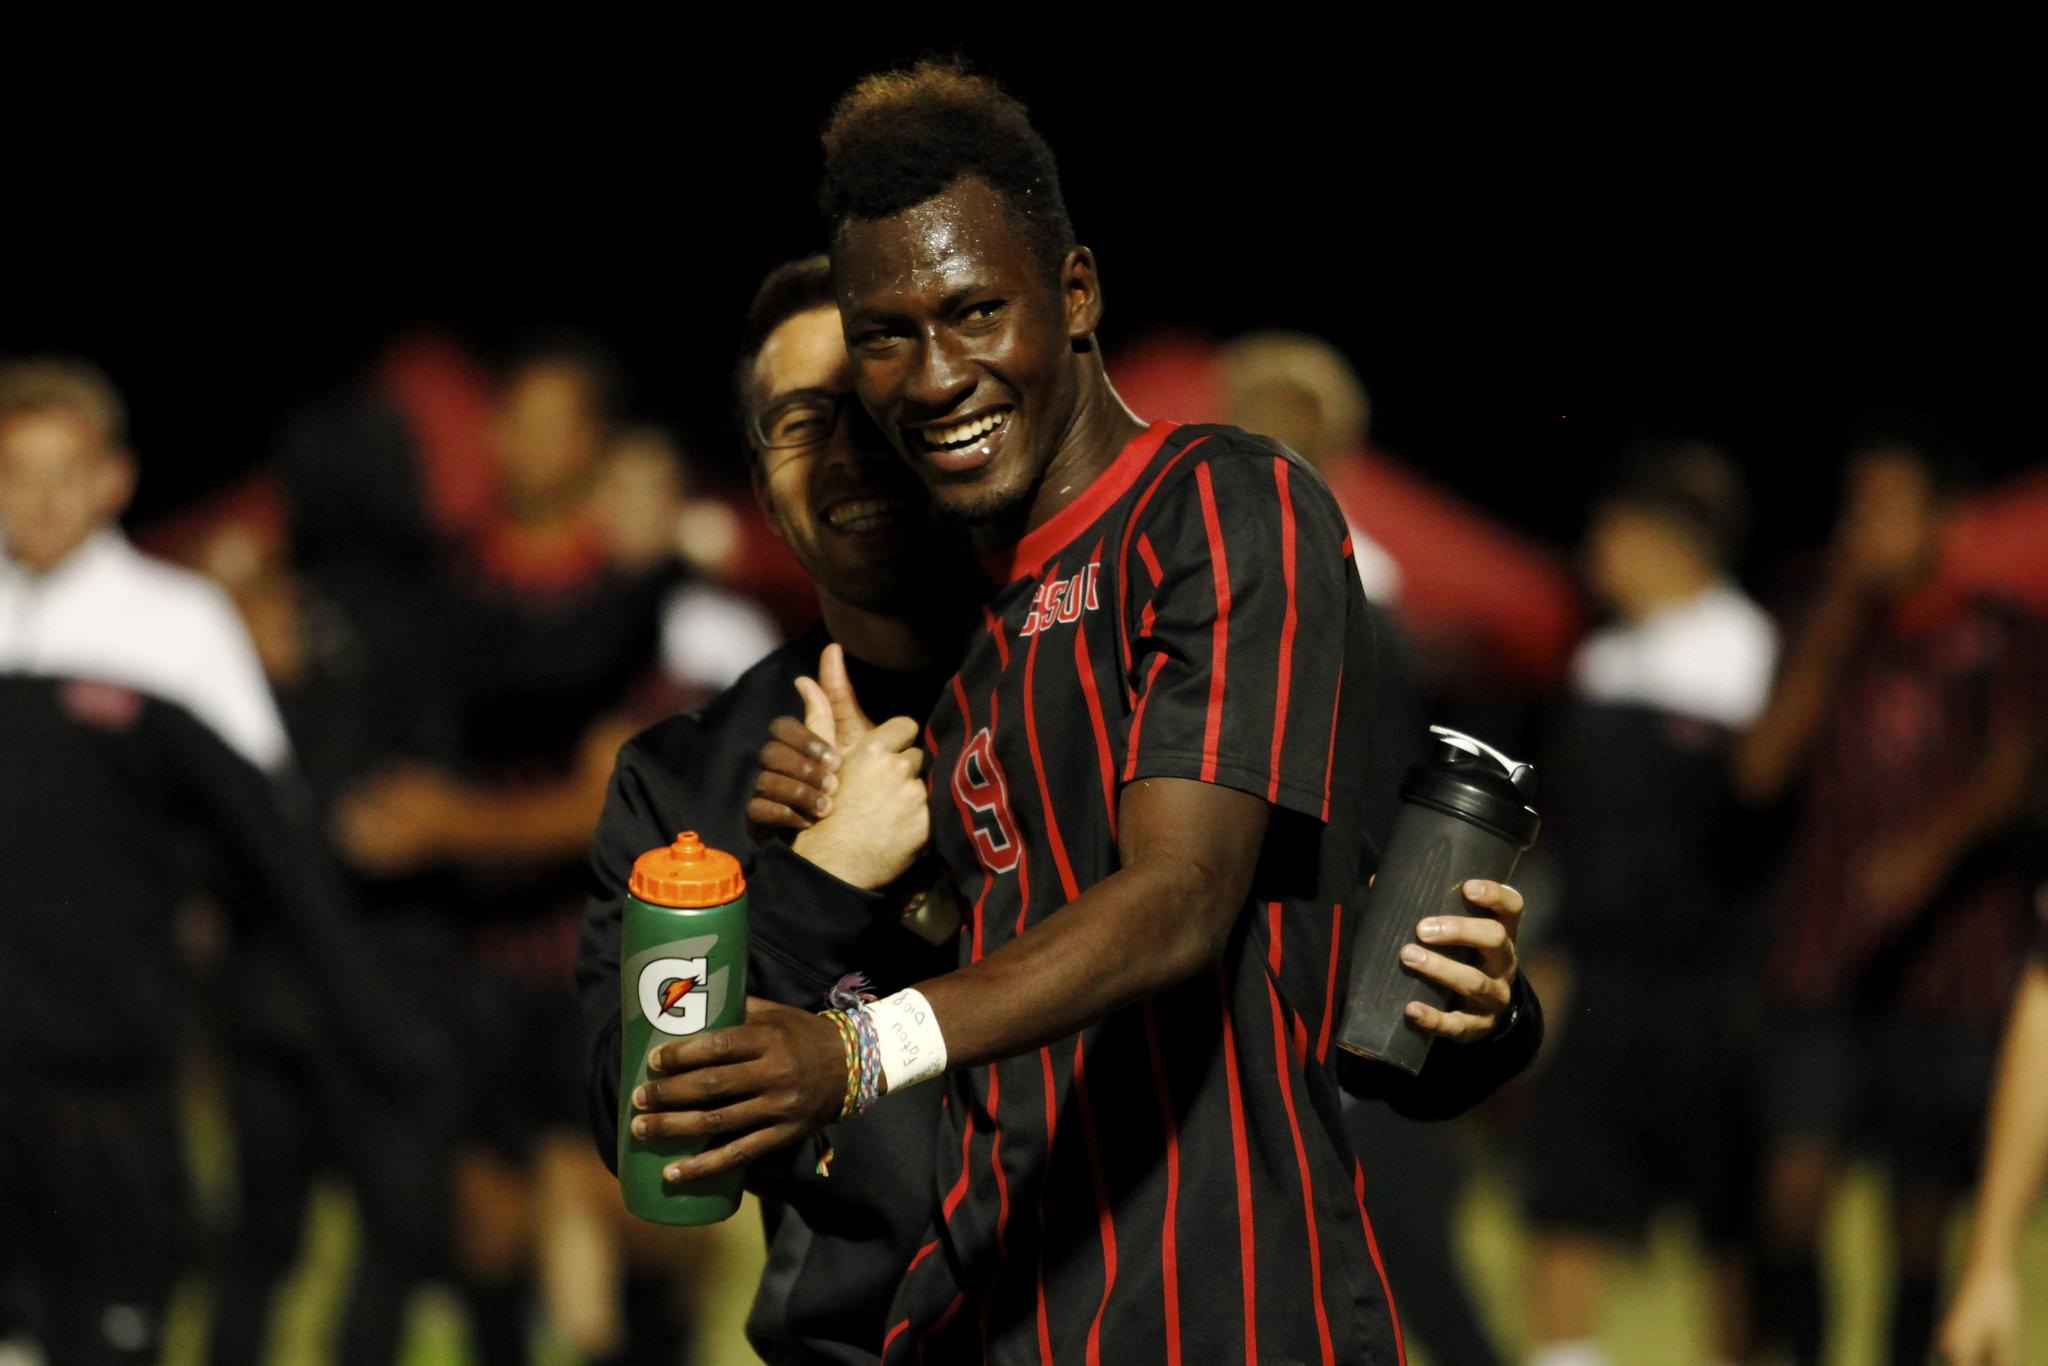 Sophomore+forward+Papi+Diouf+celebrates+with+a+member+of+the+CSUN+staff+after+scoring+the+game-winning+goal+against+UC+Riverside.+%28Juan+Pardo%29